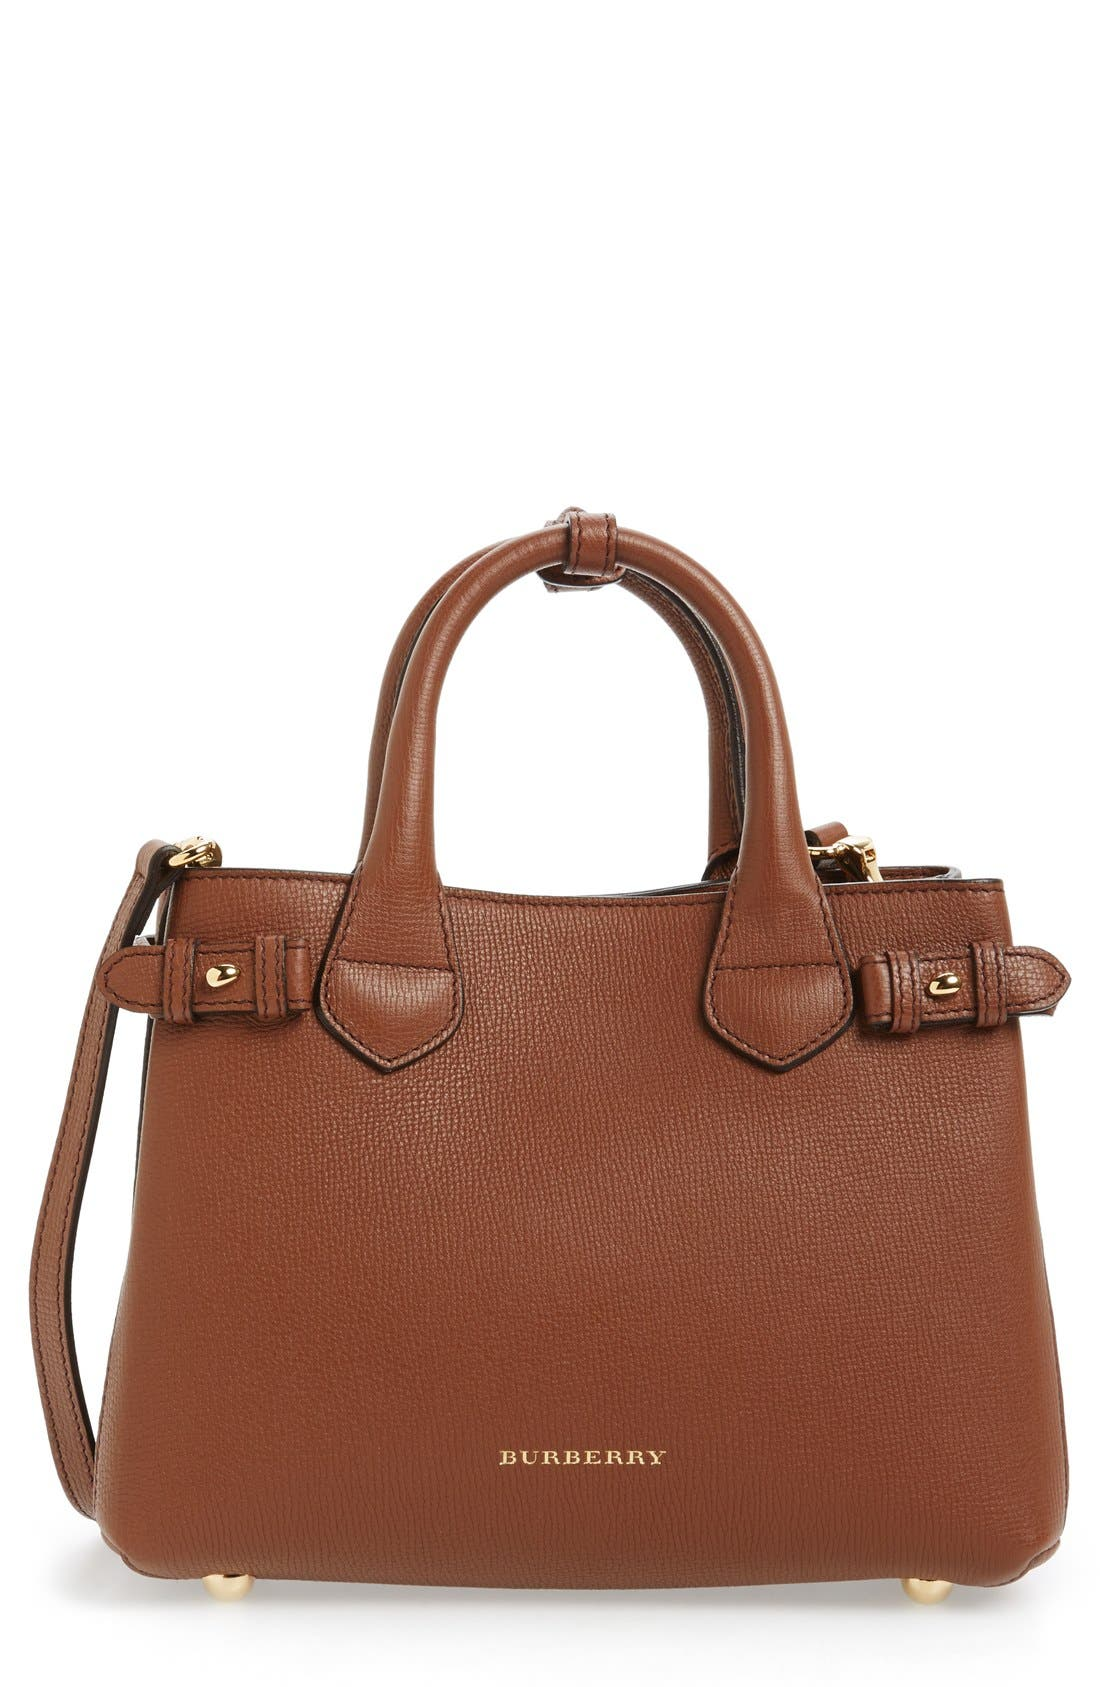 Burberry 'Small Banner' Leather Tote